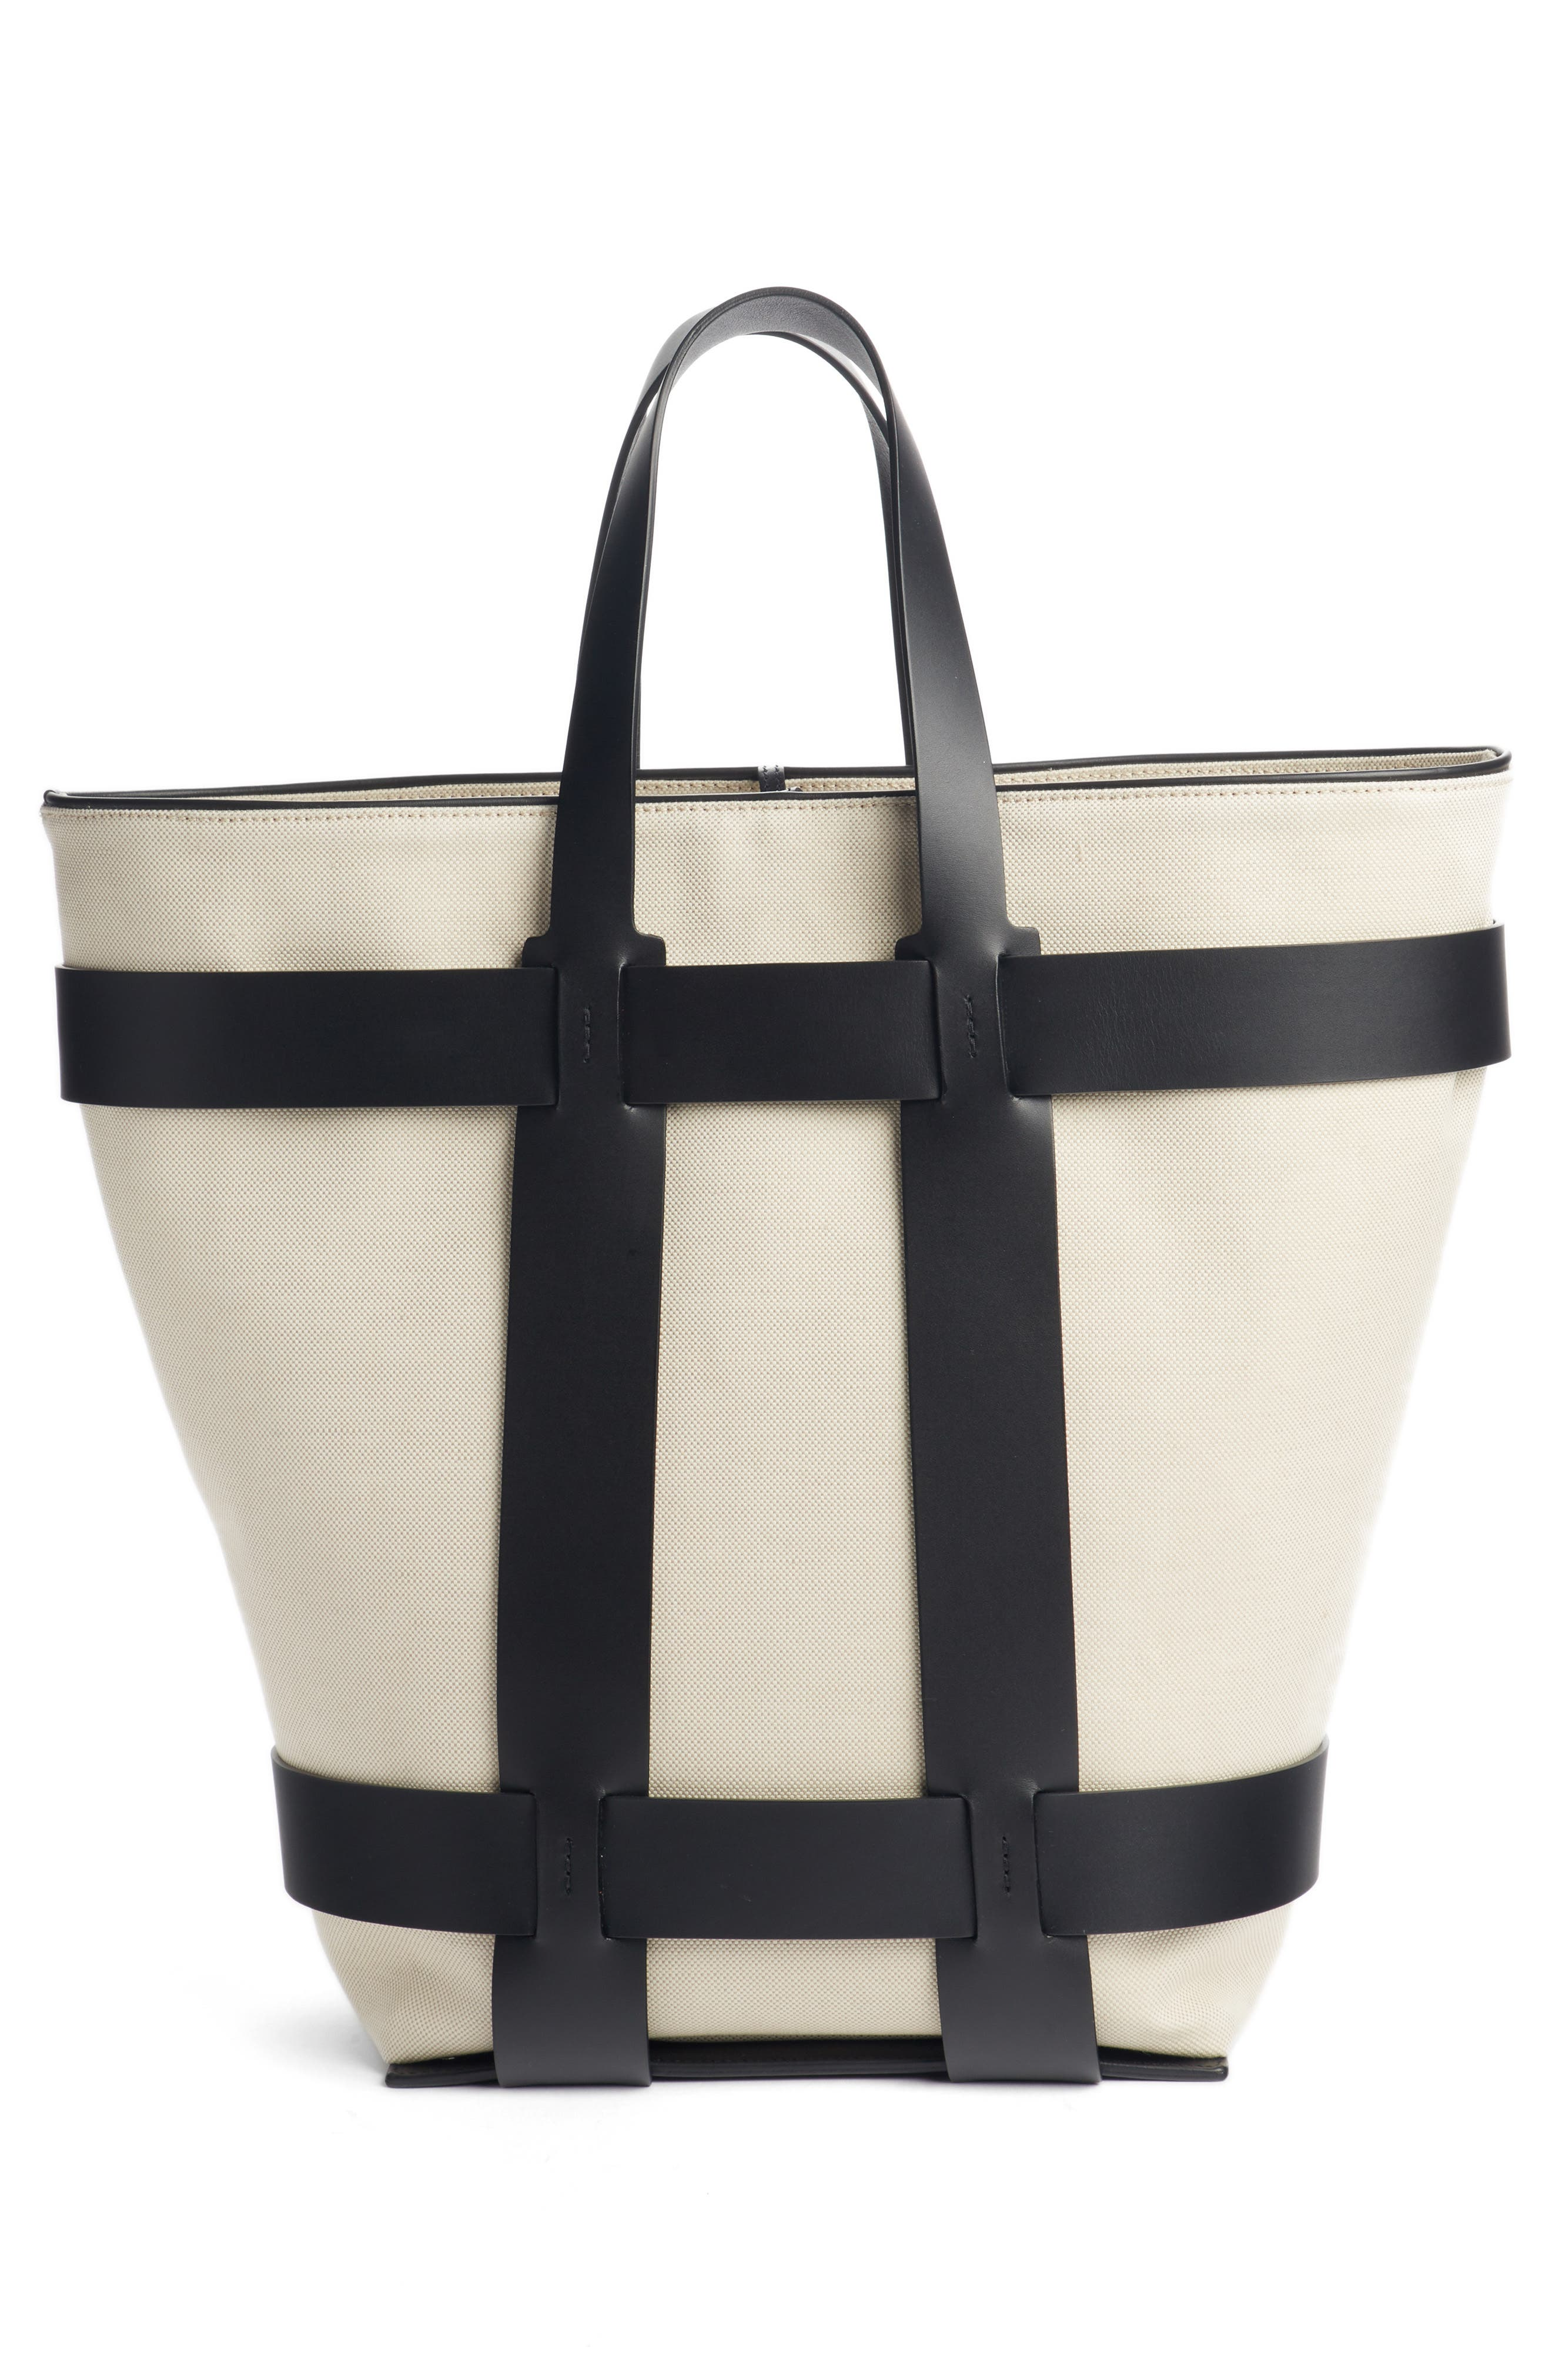 PACO RABANNE,                             Cage Leather & Canvas North/South Tote,                             Alternate thumbnail 3, color,                             IVORY/ BLACK